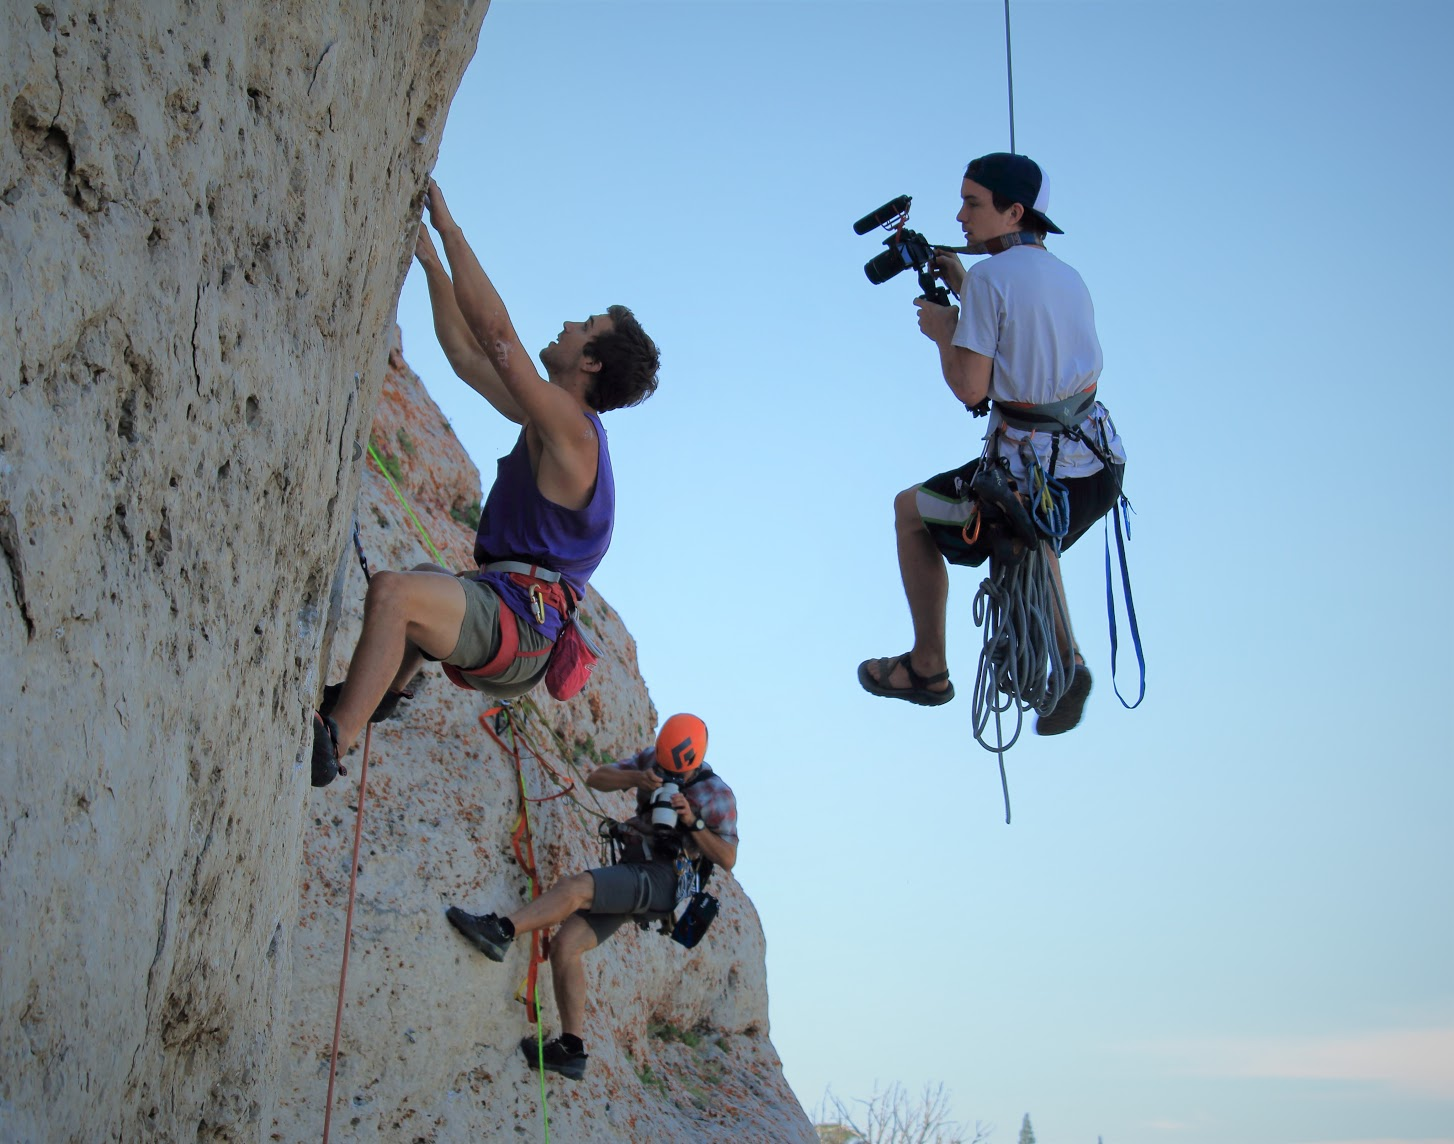 Learn The Basics And Have Some Fun With Rock Climbing